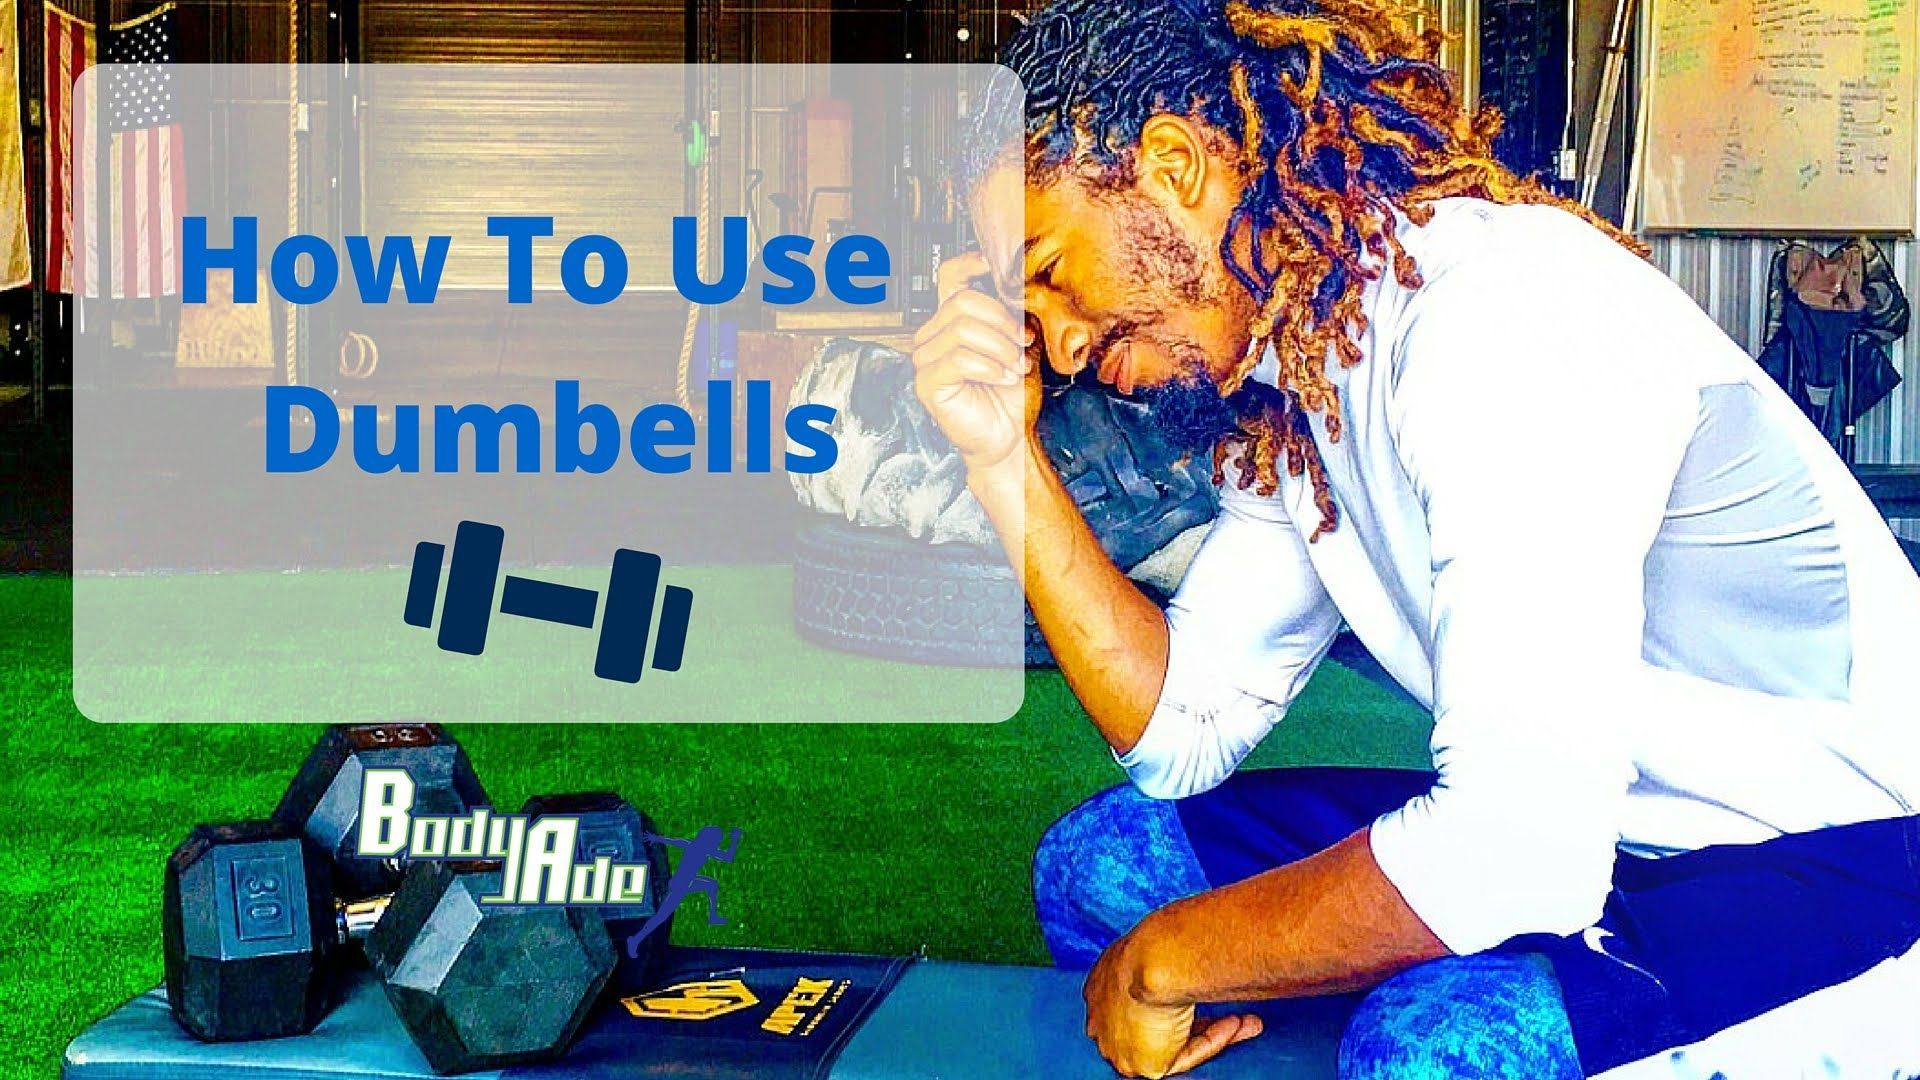 Best Dumbbell Exercises: How to Use Dumbbells #dumbbellexercises Best Dumbbell Exercises: How to Use Dumbbells #dumbbellexercises